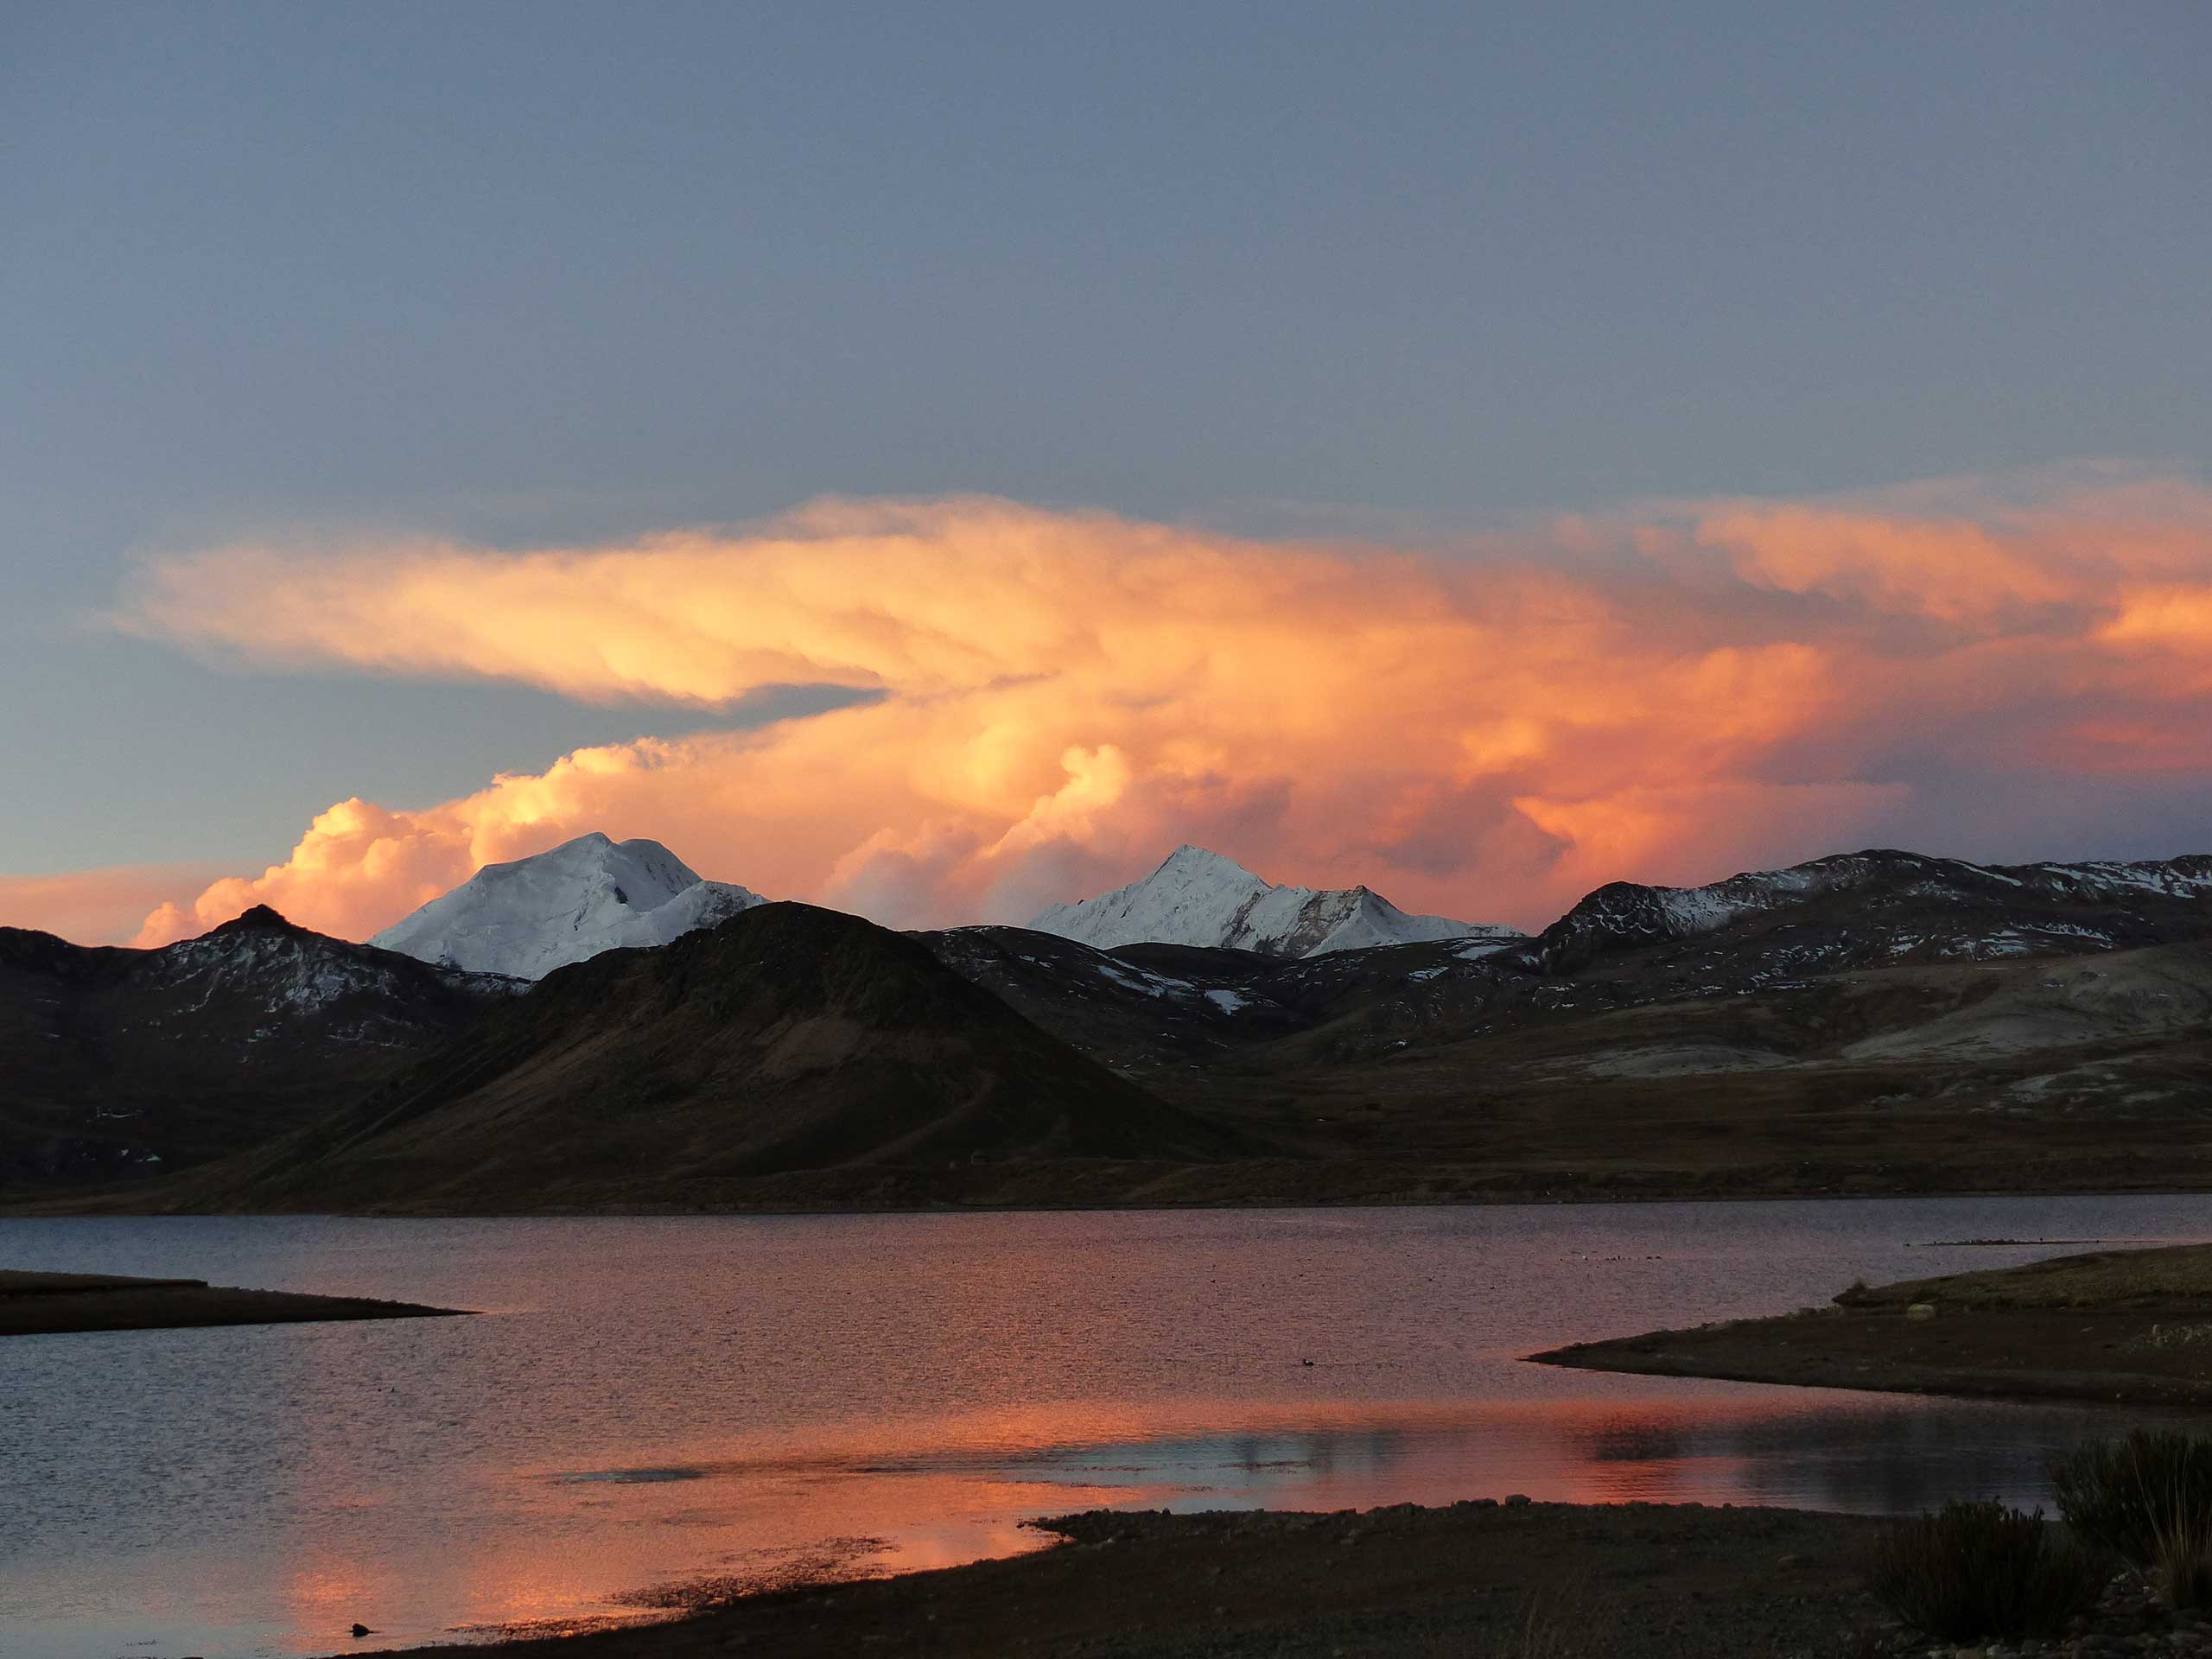 5000m High Sunset in the Andes